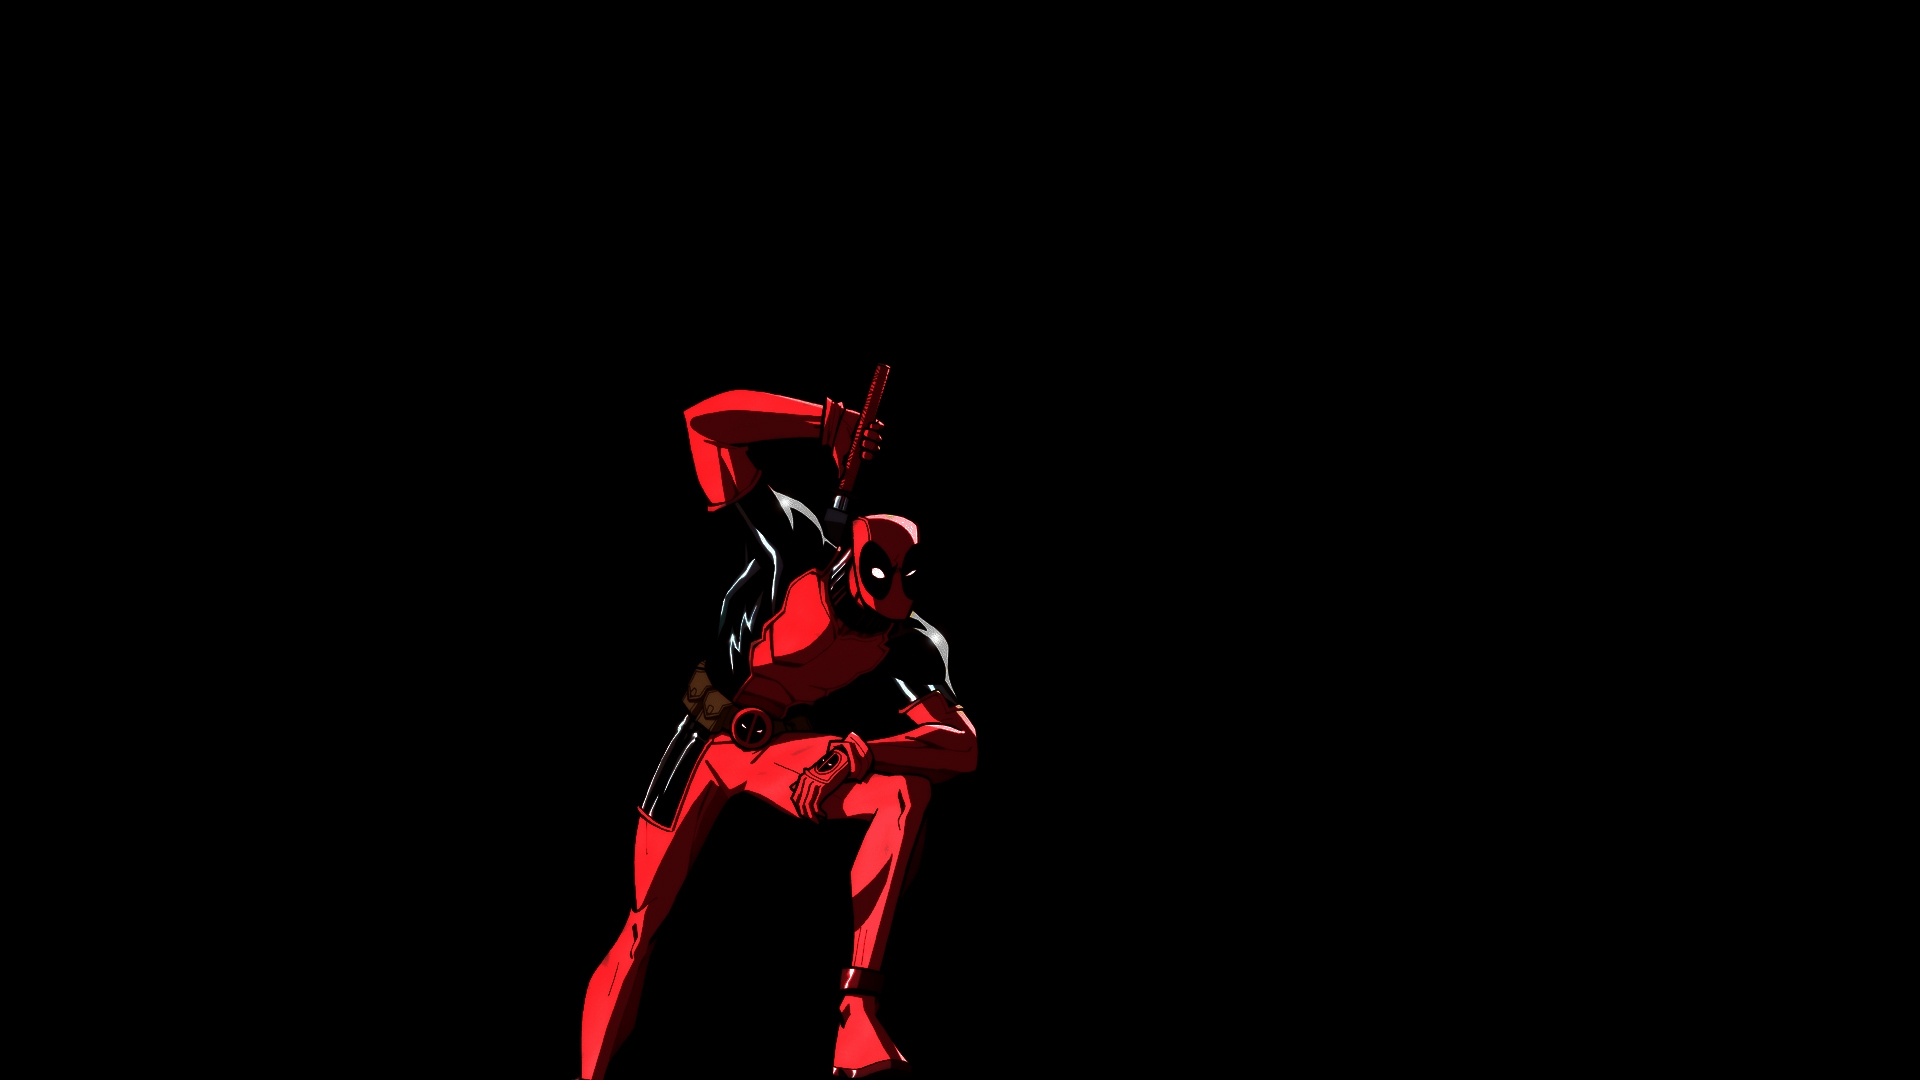 deadpool wallpaper android images